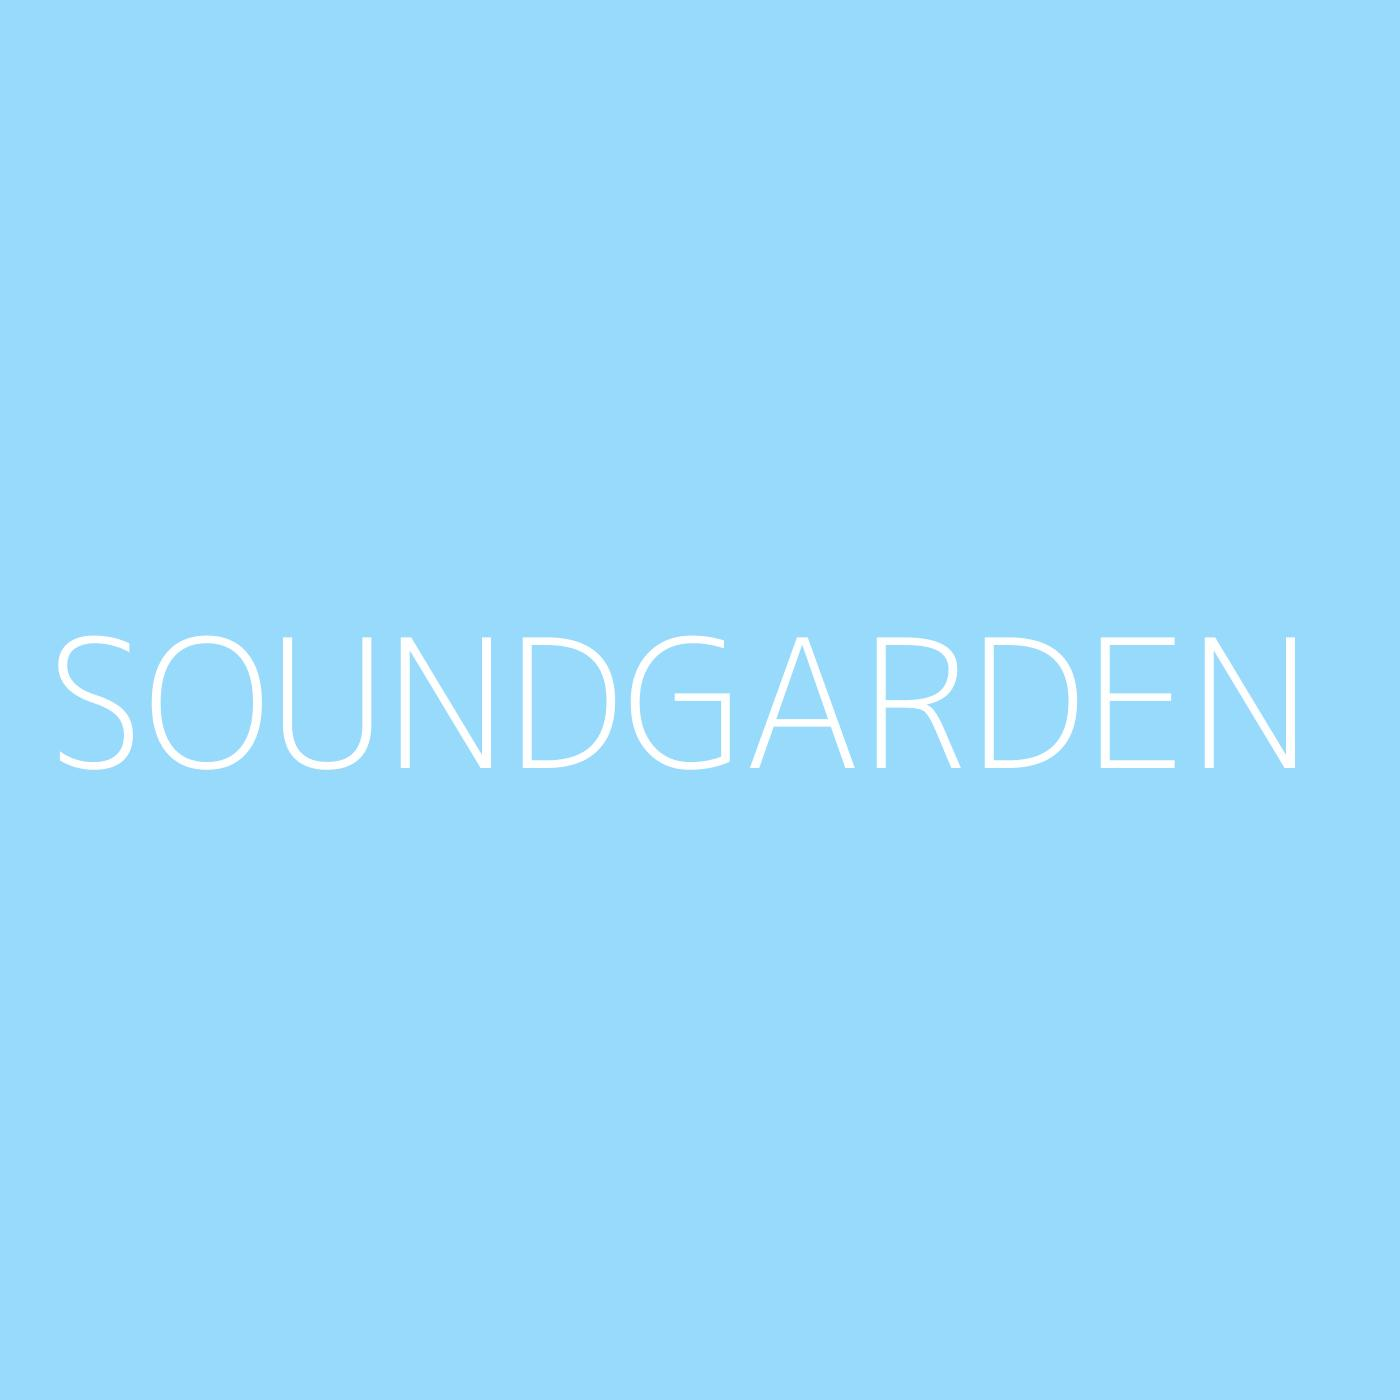 Soundgarden Playlist Artwork